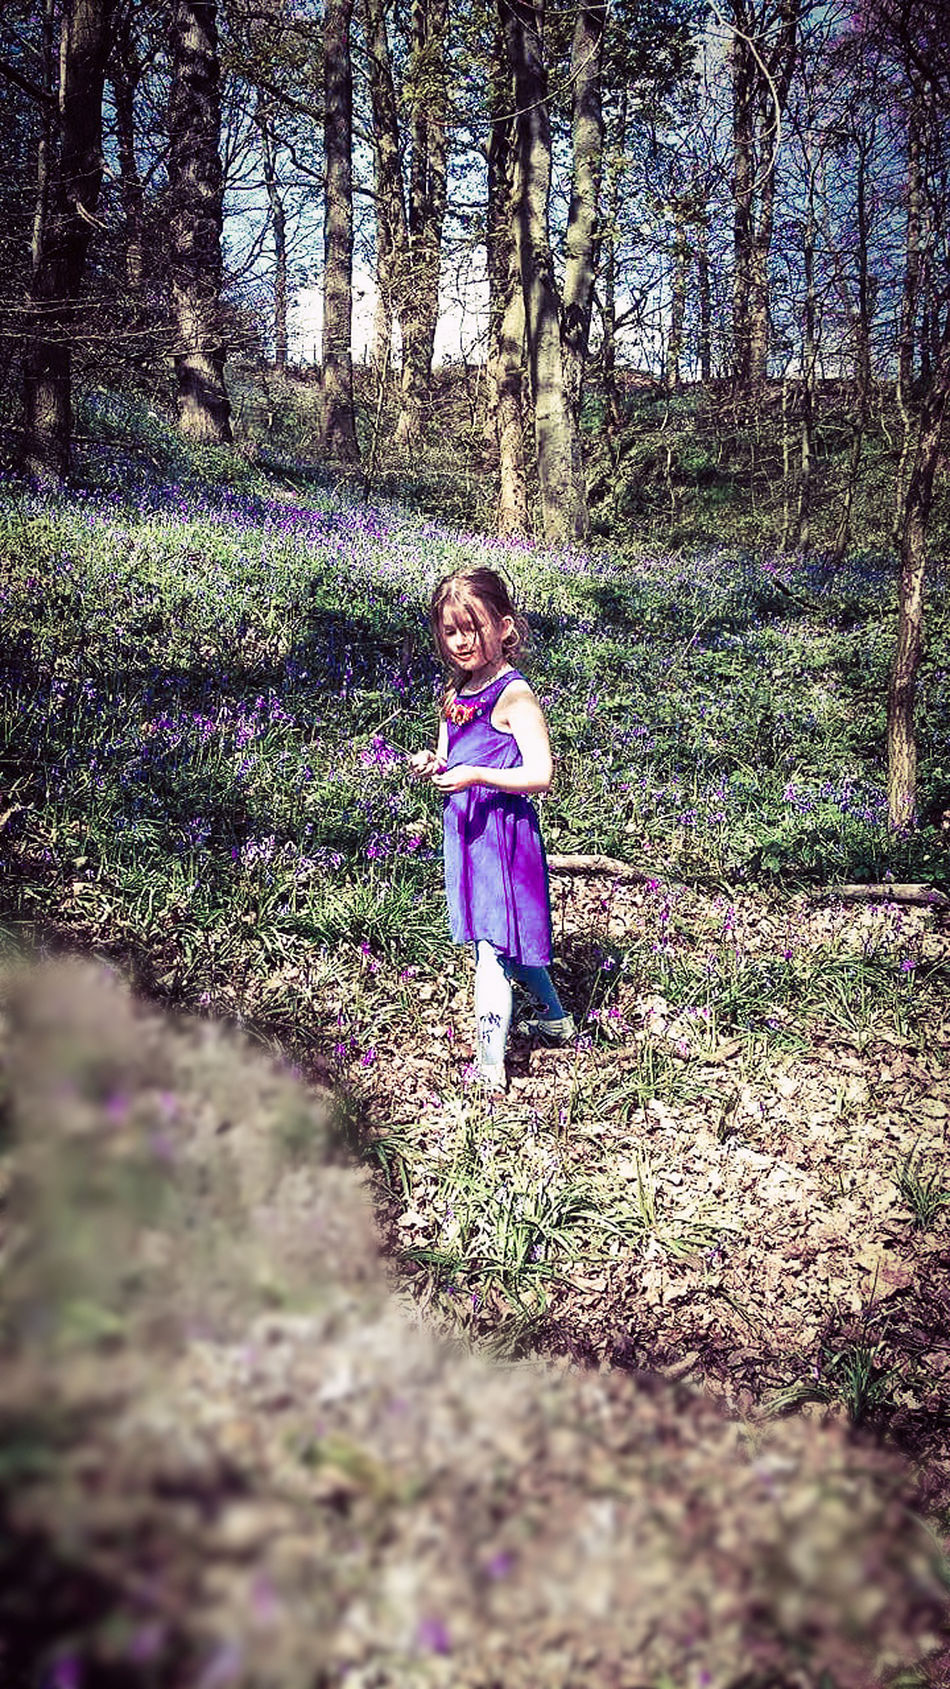 Childhood One Person Full Length Girls Day Real People Standing Leisure Activity One Girl Only Children Only Child Grass Outdoors Tree Nature People Adult From My Point Of View Innocence EyeEm Best Shots Eyeemgallery Eyeem Market Grass Check This Out Beauty In Nature